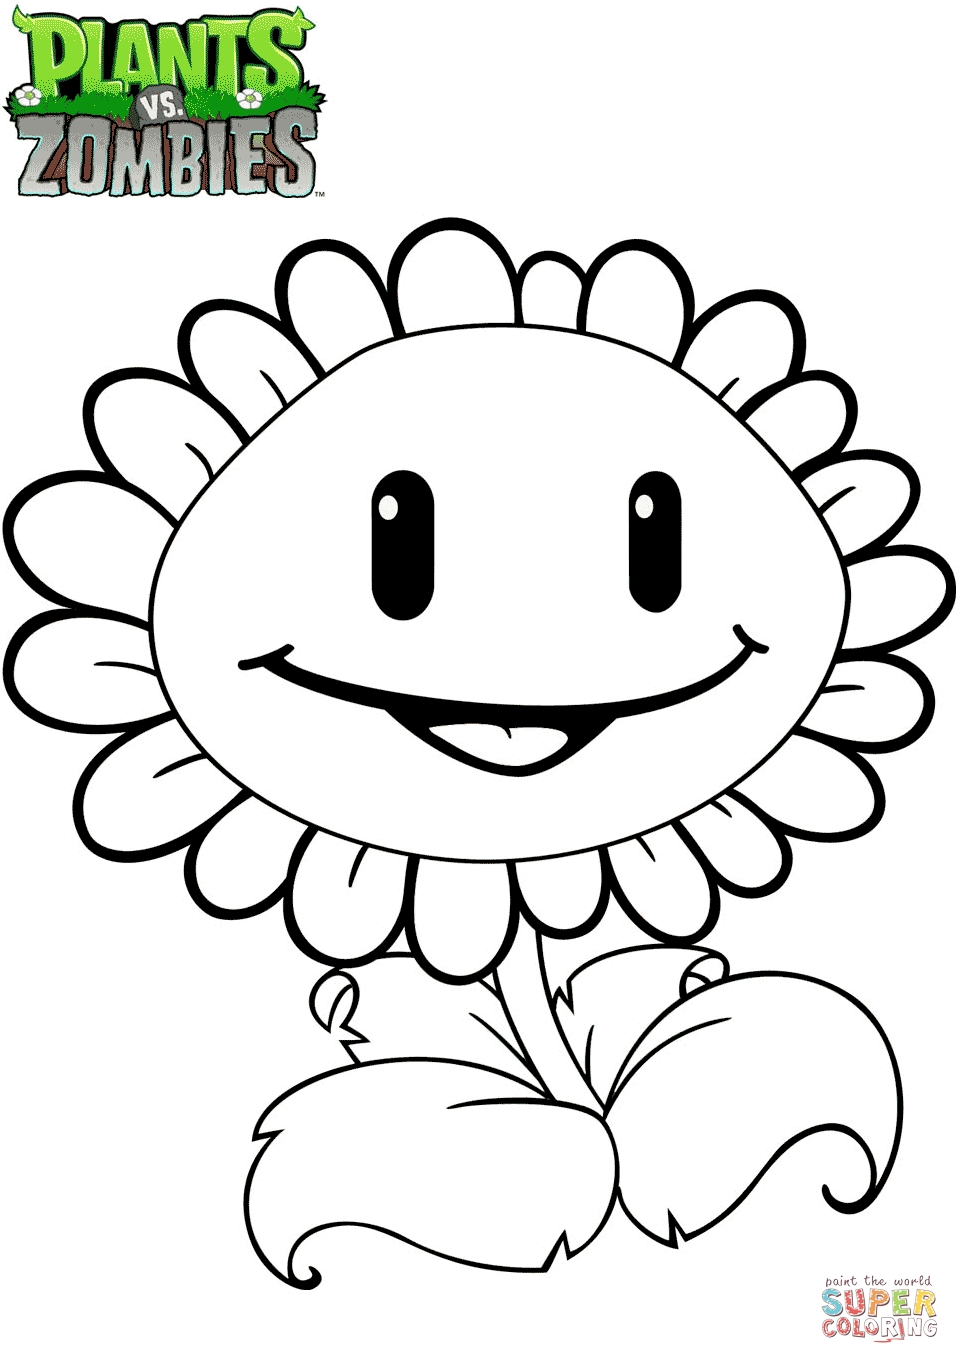 Plants Vs Zombies Sunflower Coloring Page Free Printable